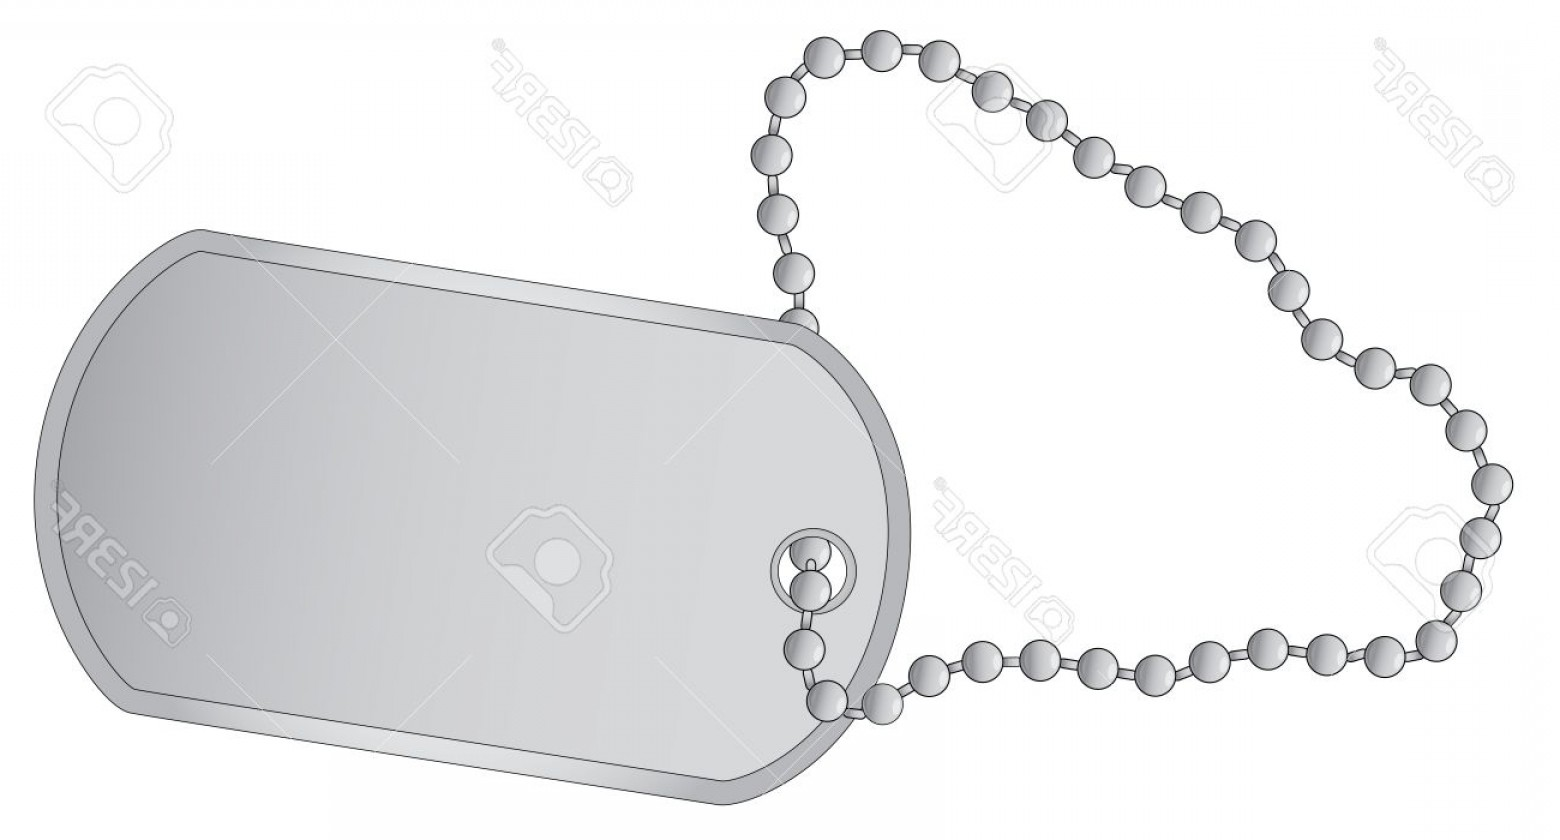 1560x840 Photoa Military Style Dog Tags With Chain Arenawp